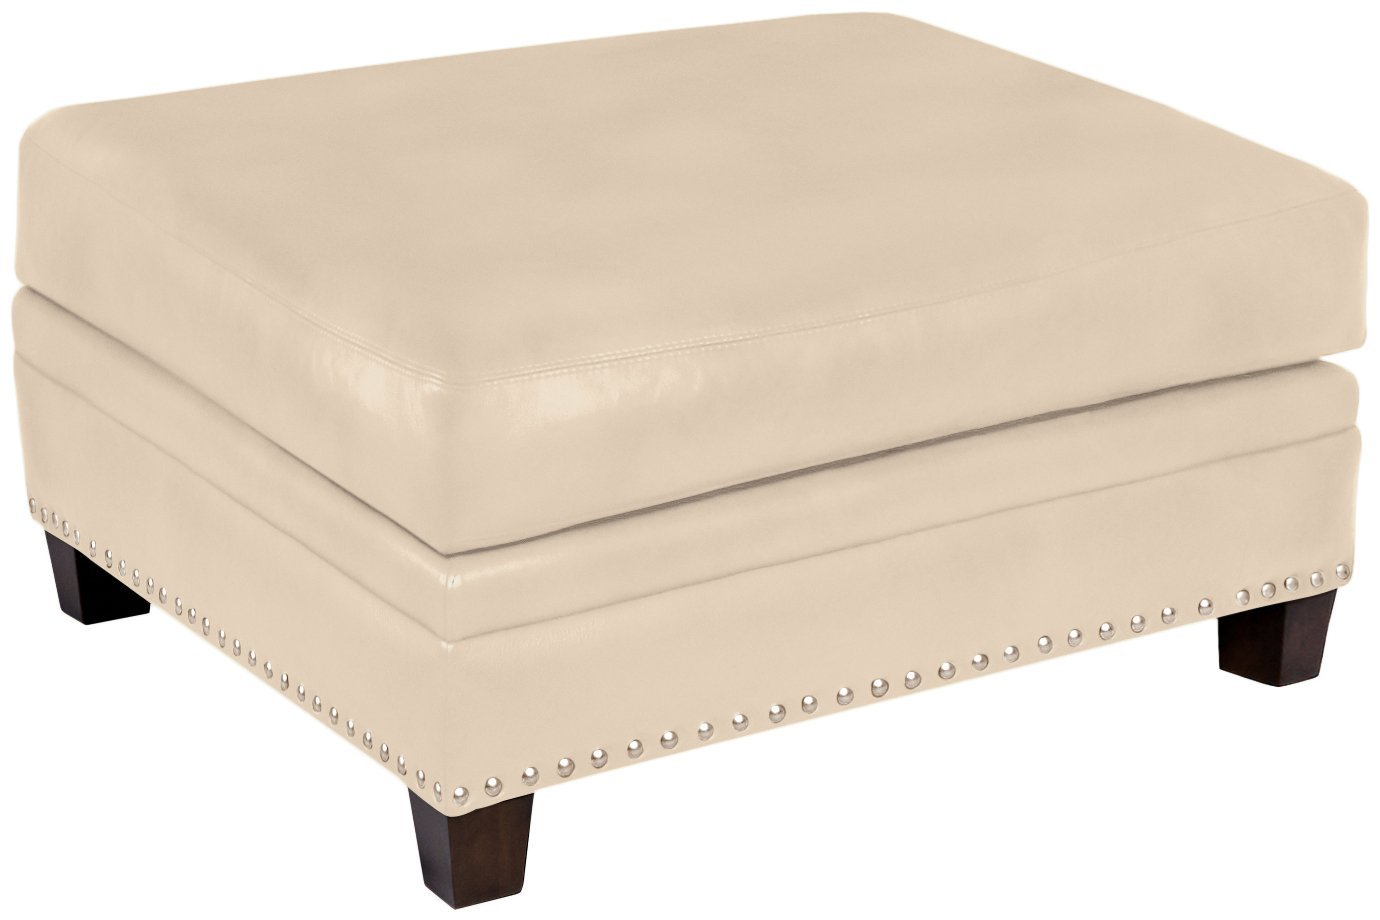 Omnia Leather Glendora Storage Ottoman in Leather, with Nail Head, Softstations White Winter